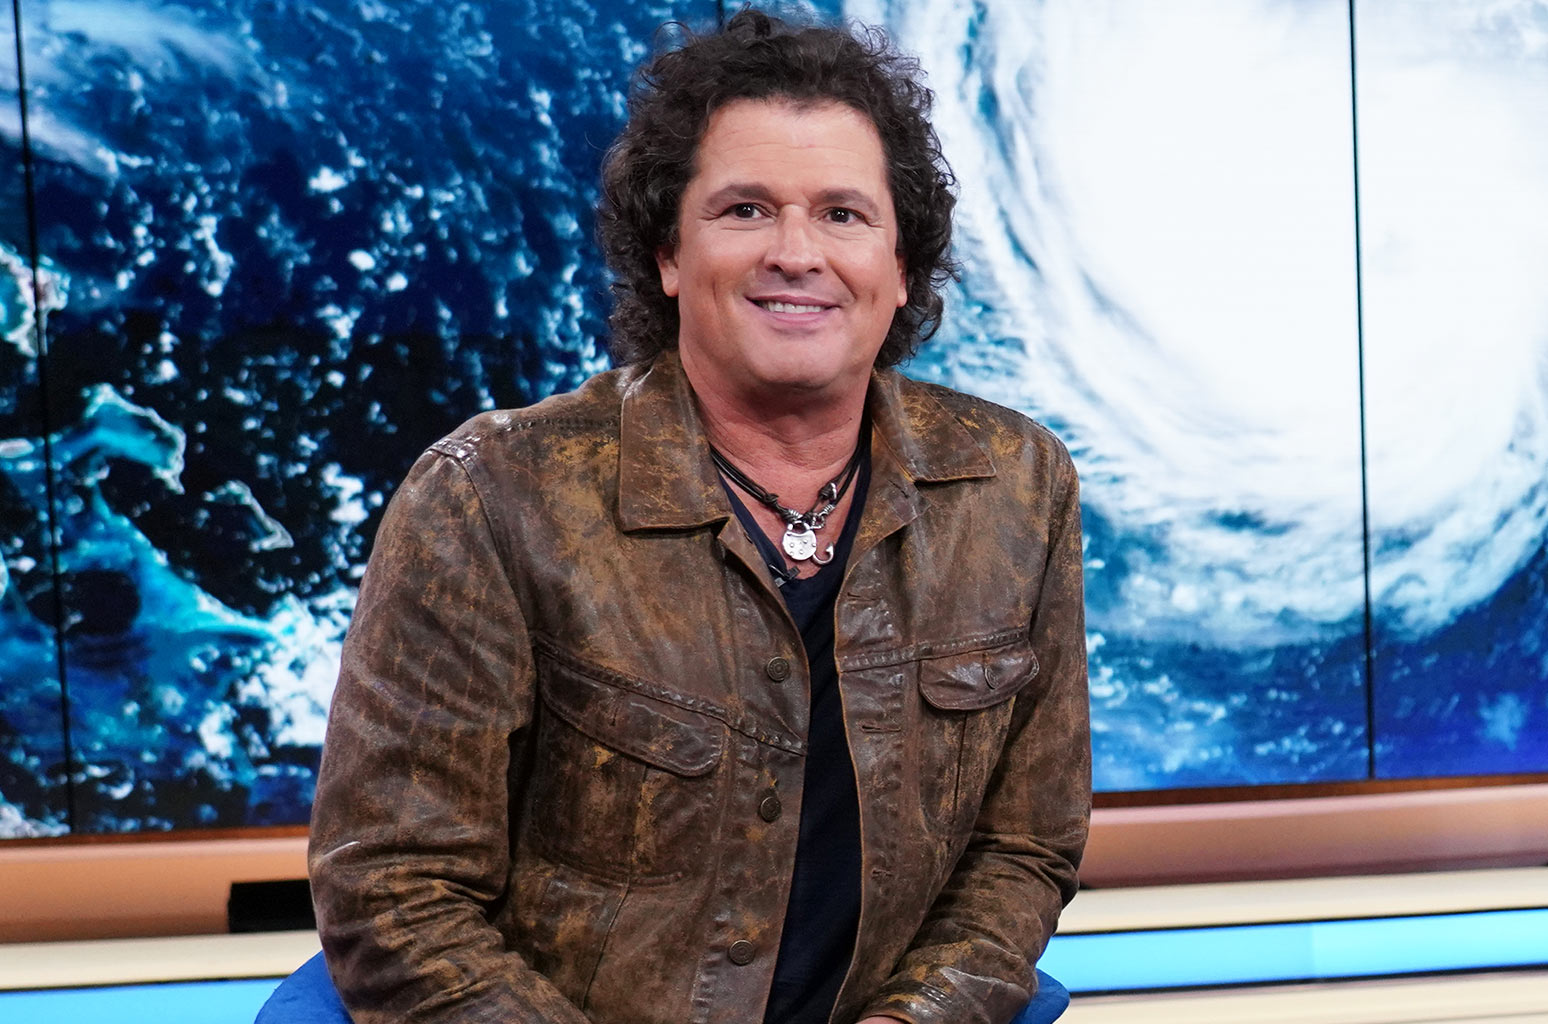 Carlos Vives Helps With Colombian Railway Museum